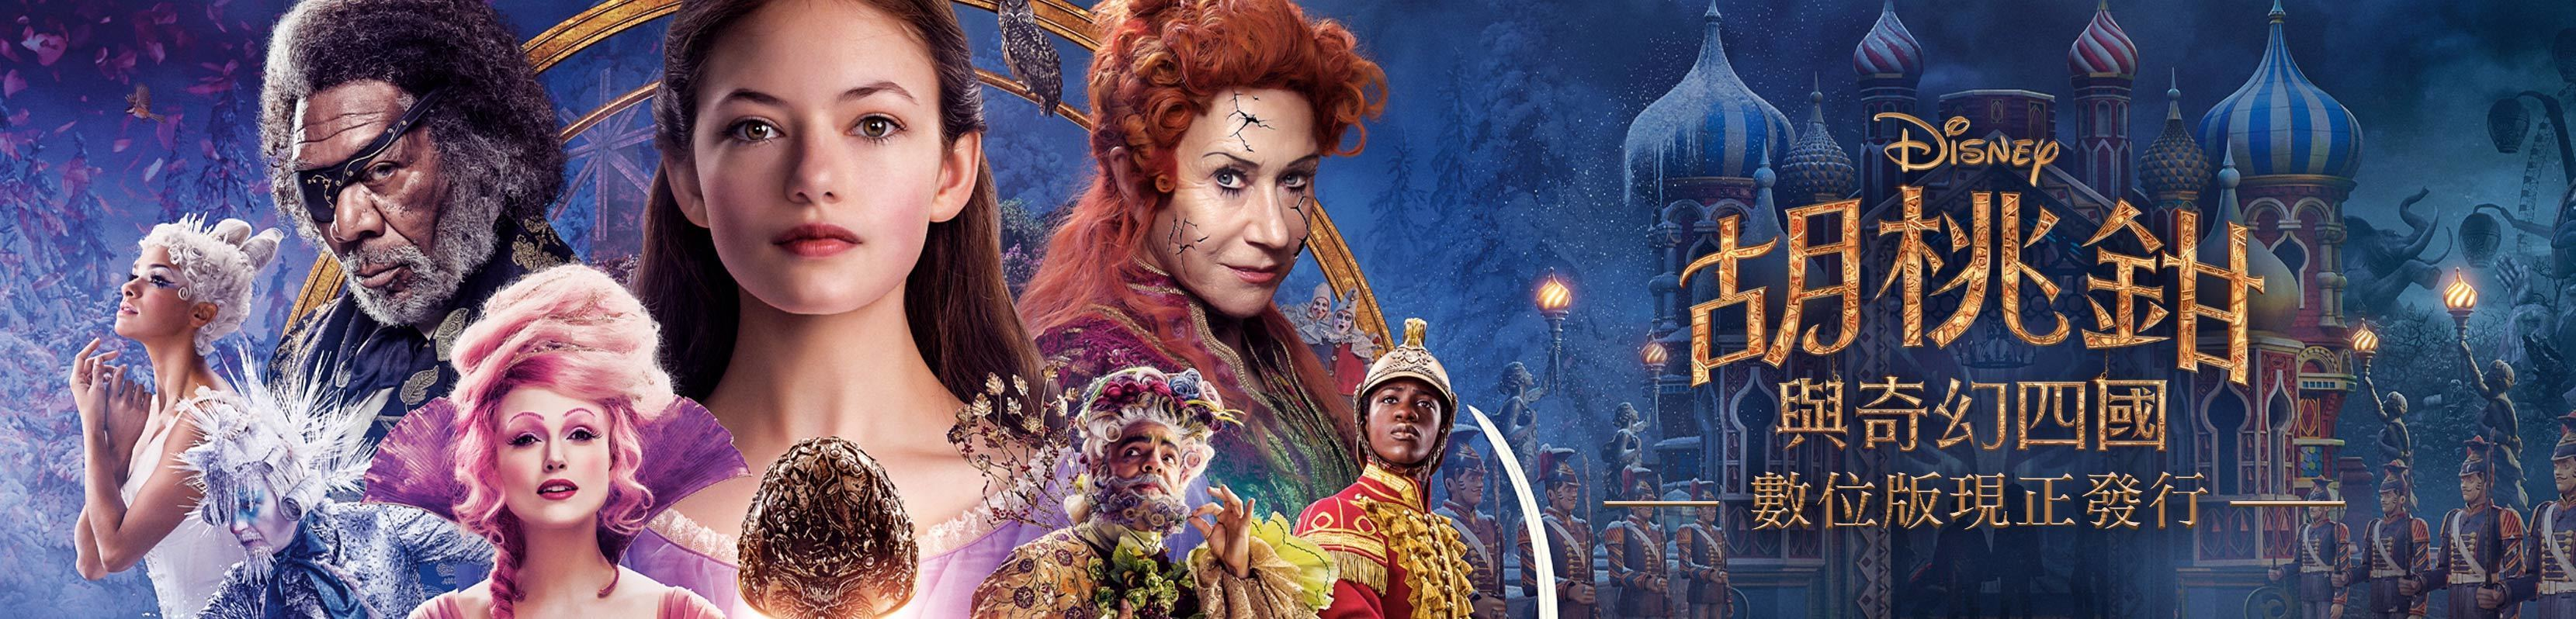 Thu Nutcracker and The Four Realms | Available on DVD, Blu-Ray & Digital Download